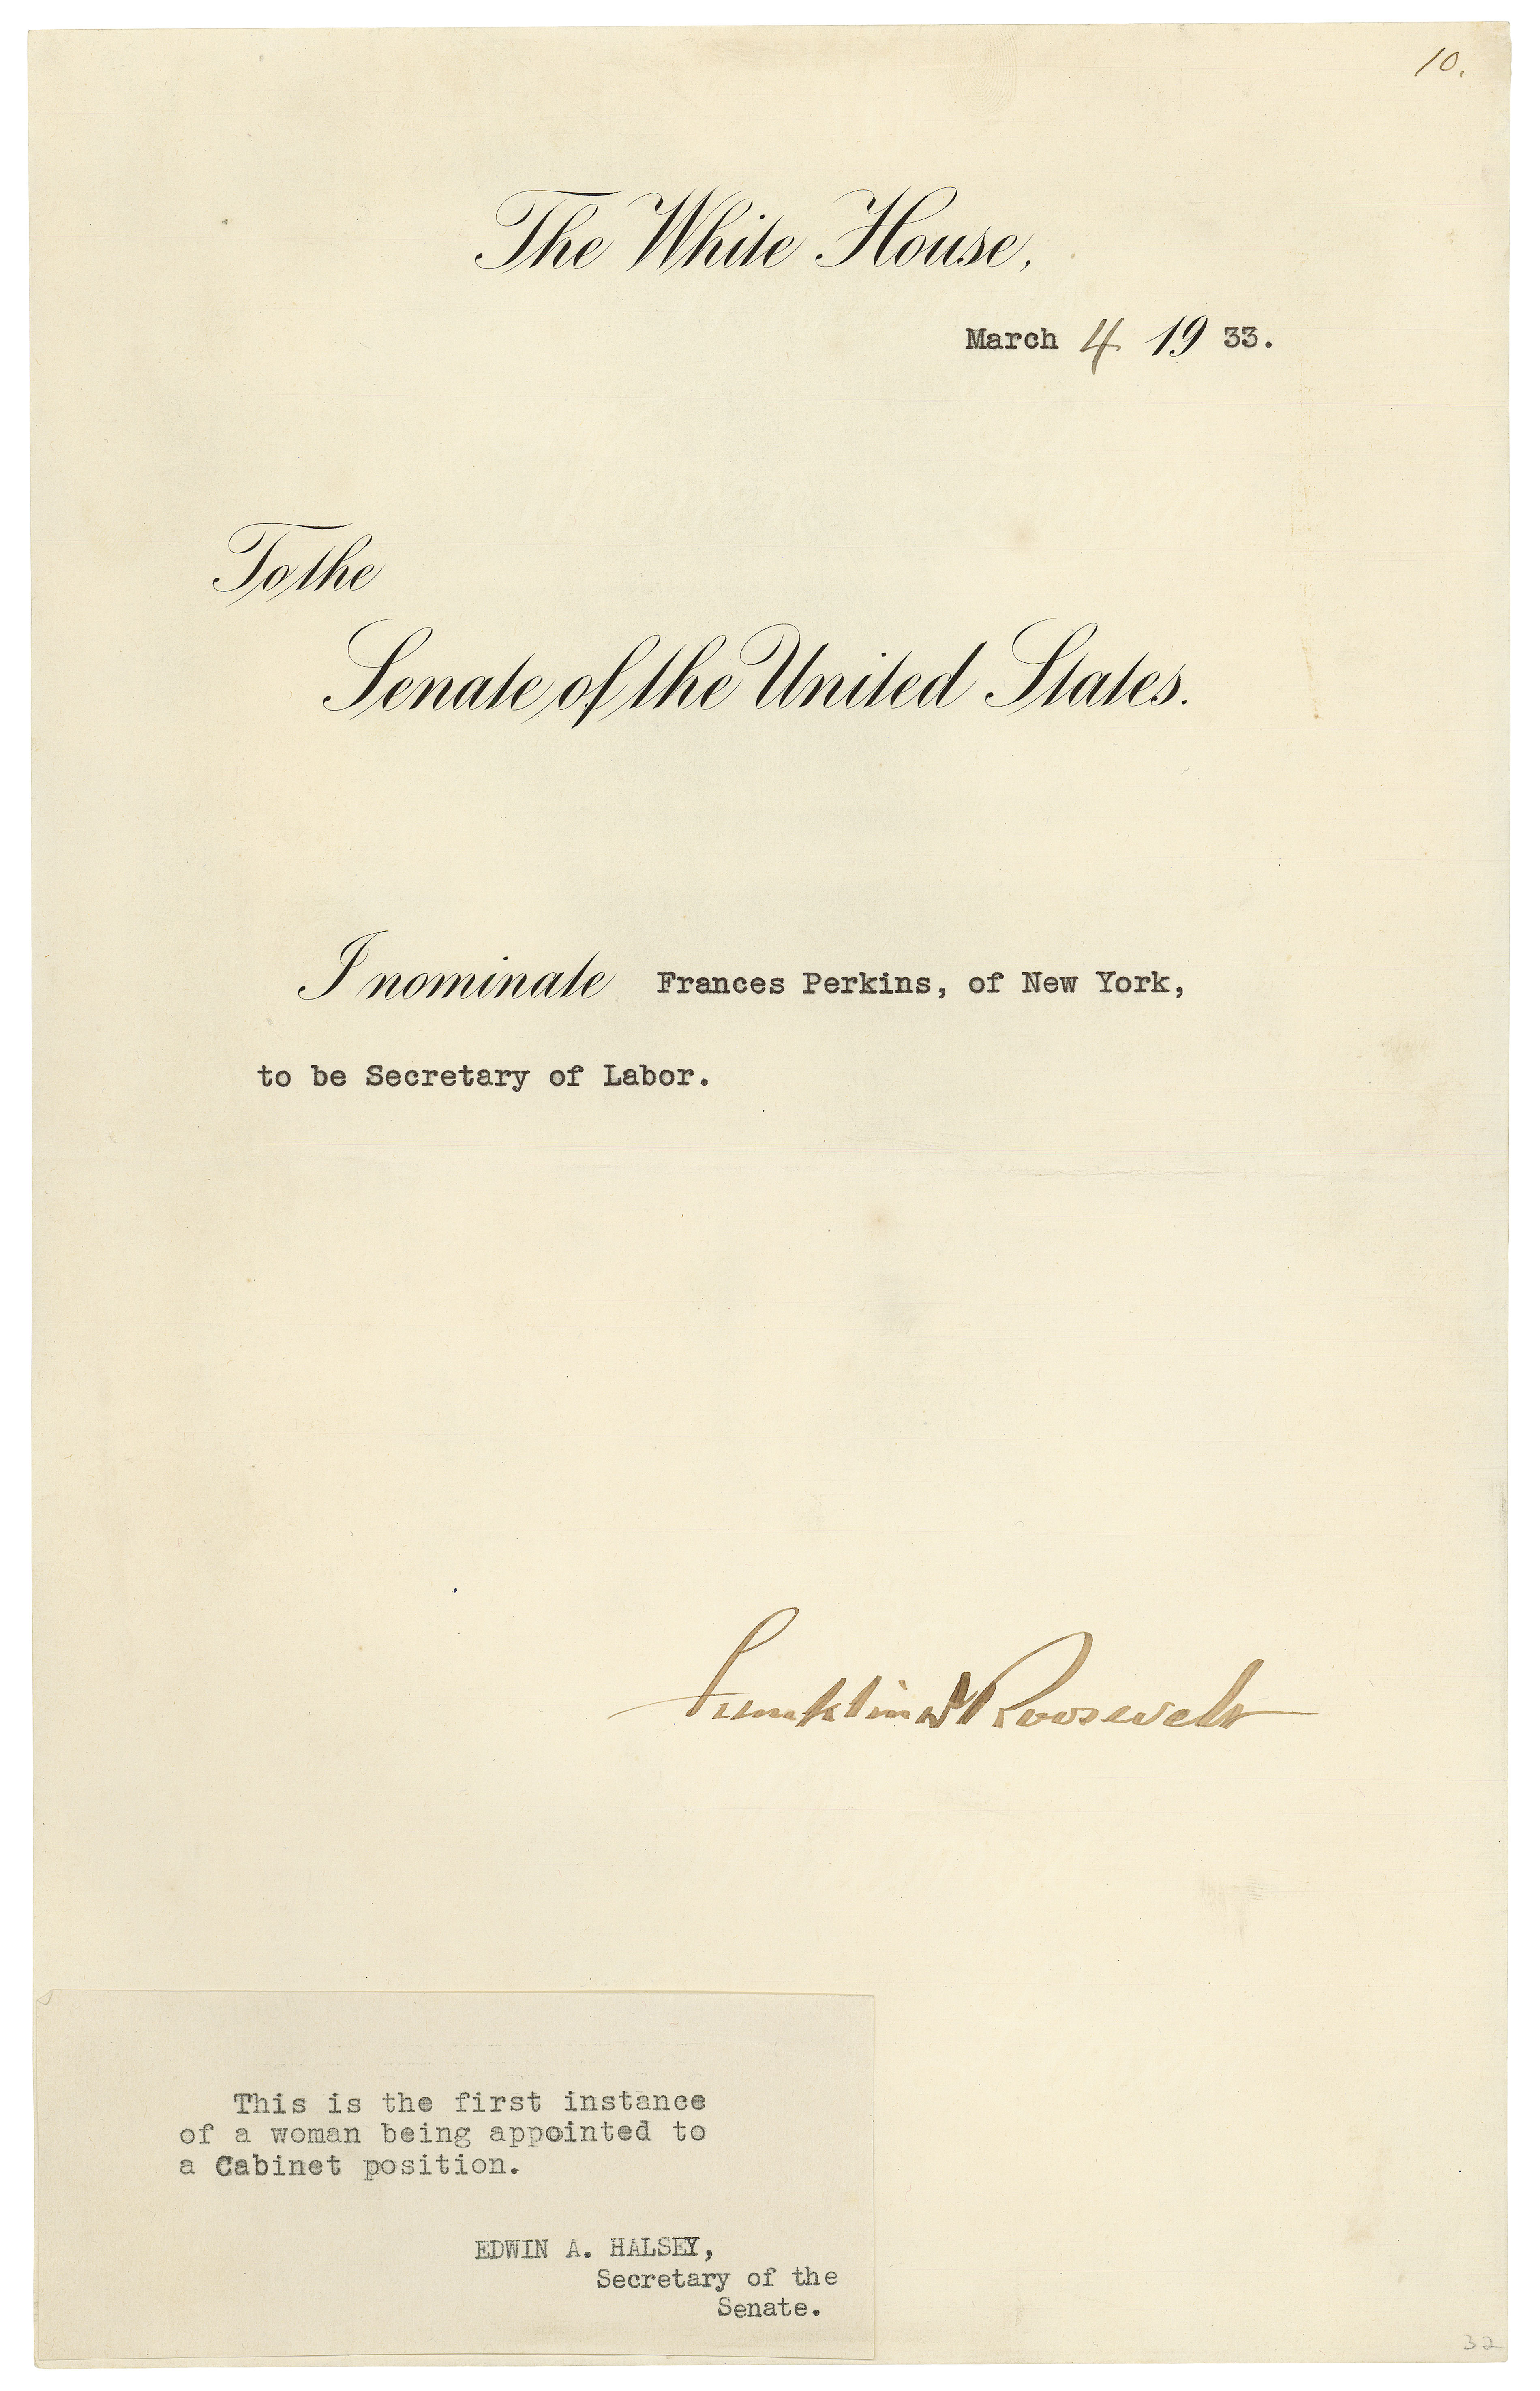 President Franklin Roosevelt's nomination of Frances Perkins to be Secretary of Labor, March 4, 1933. (National Archives Identifier 595434)